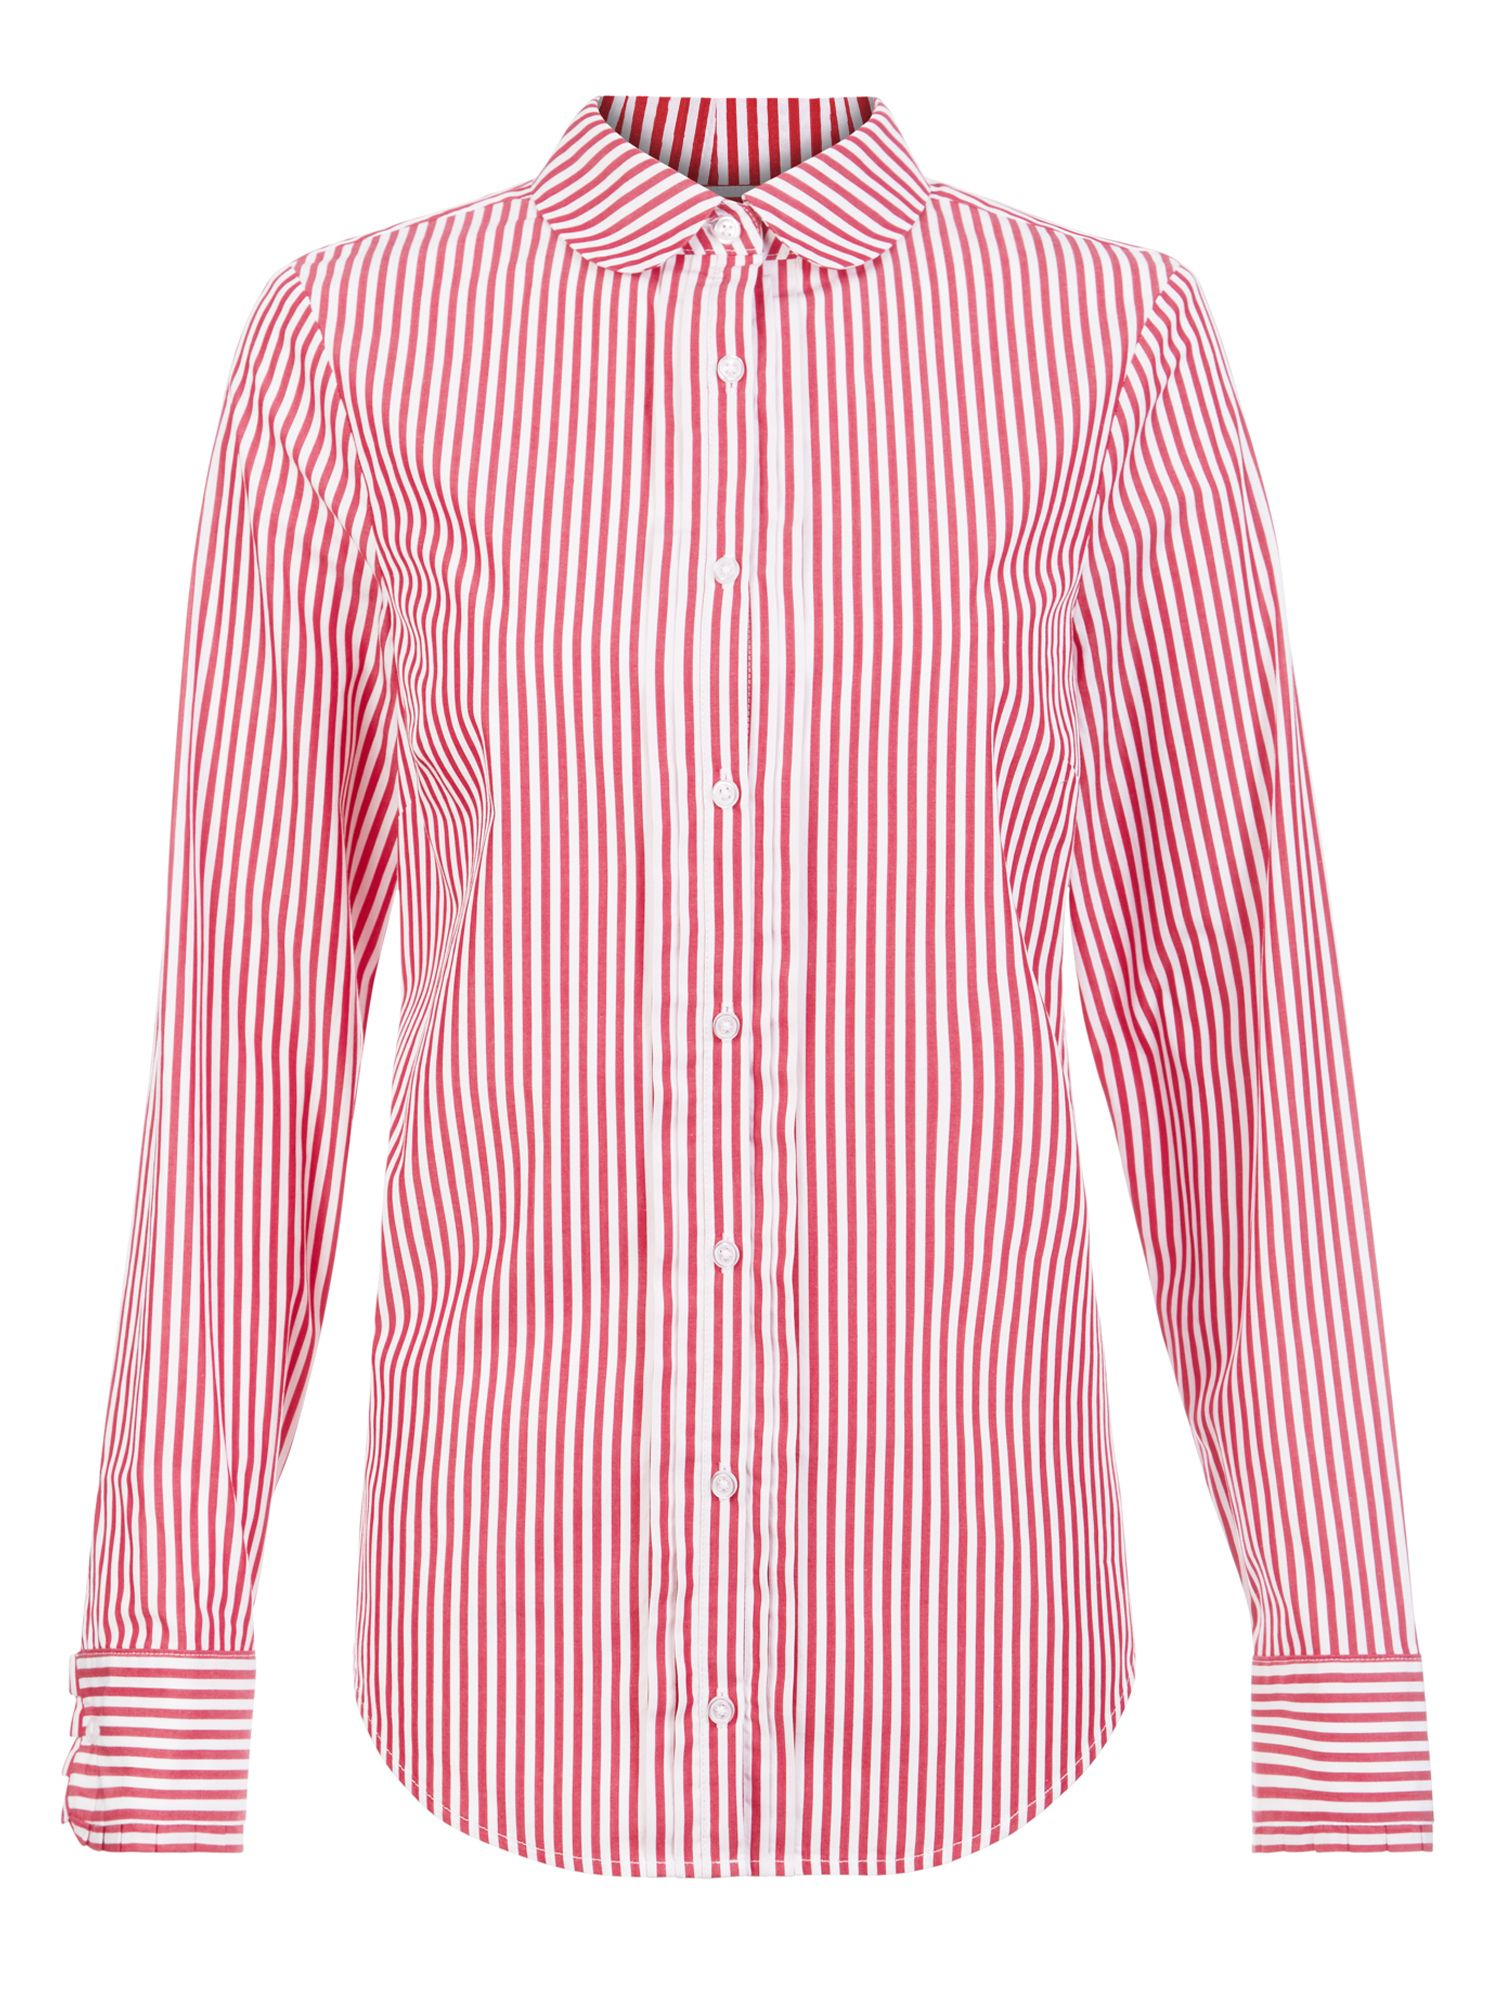 Hobbs Sierra Shirt, Red